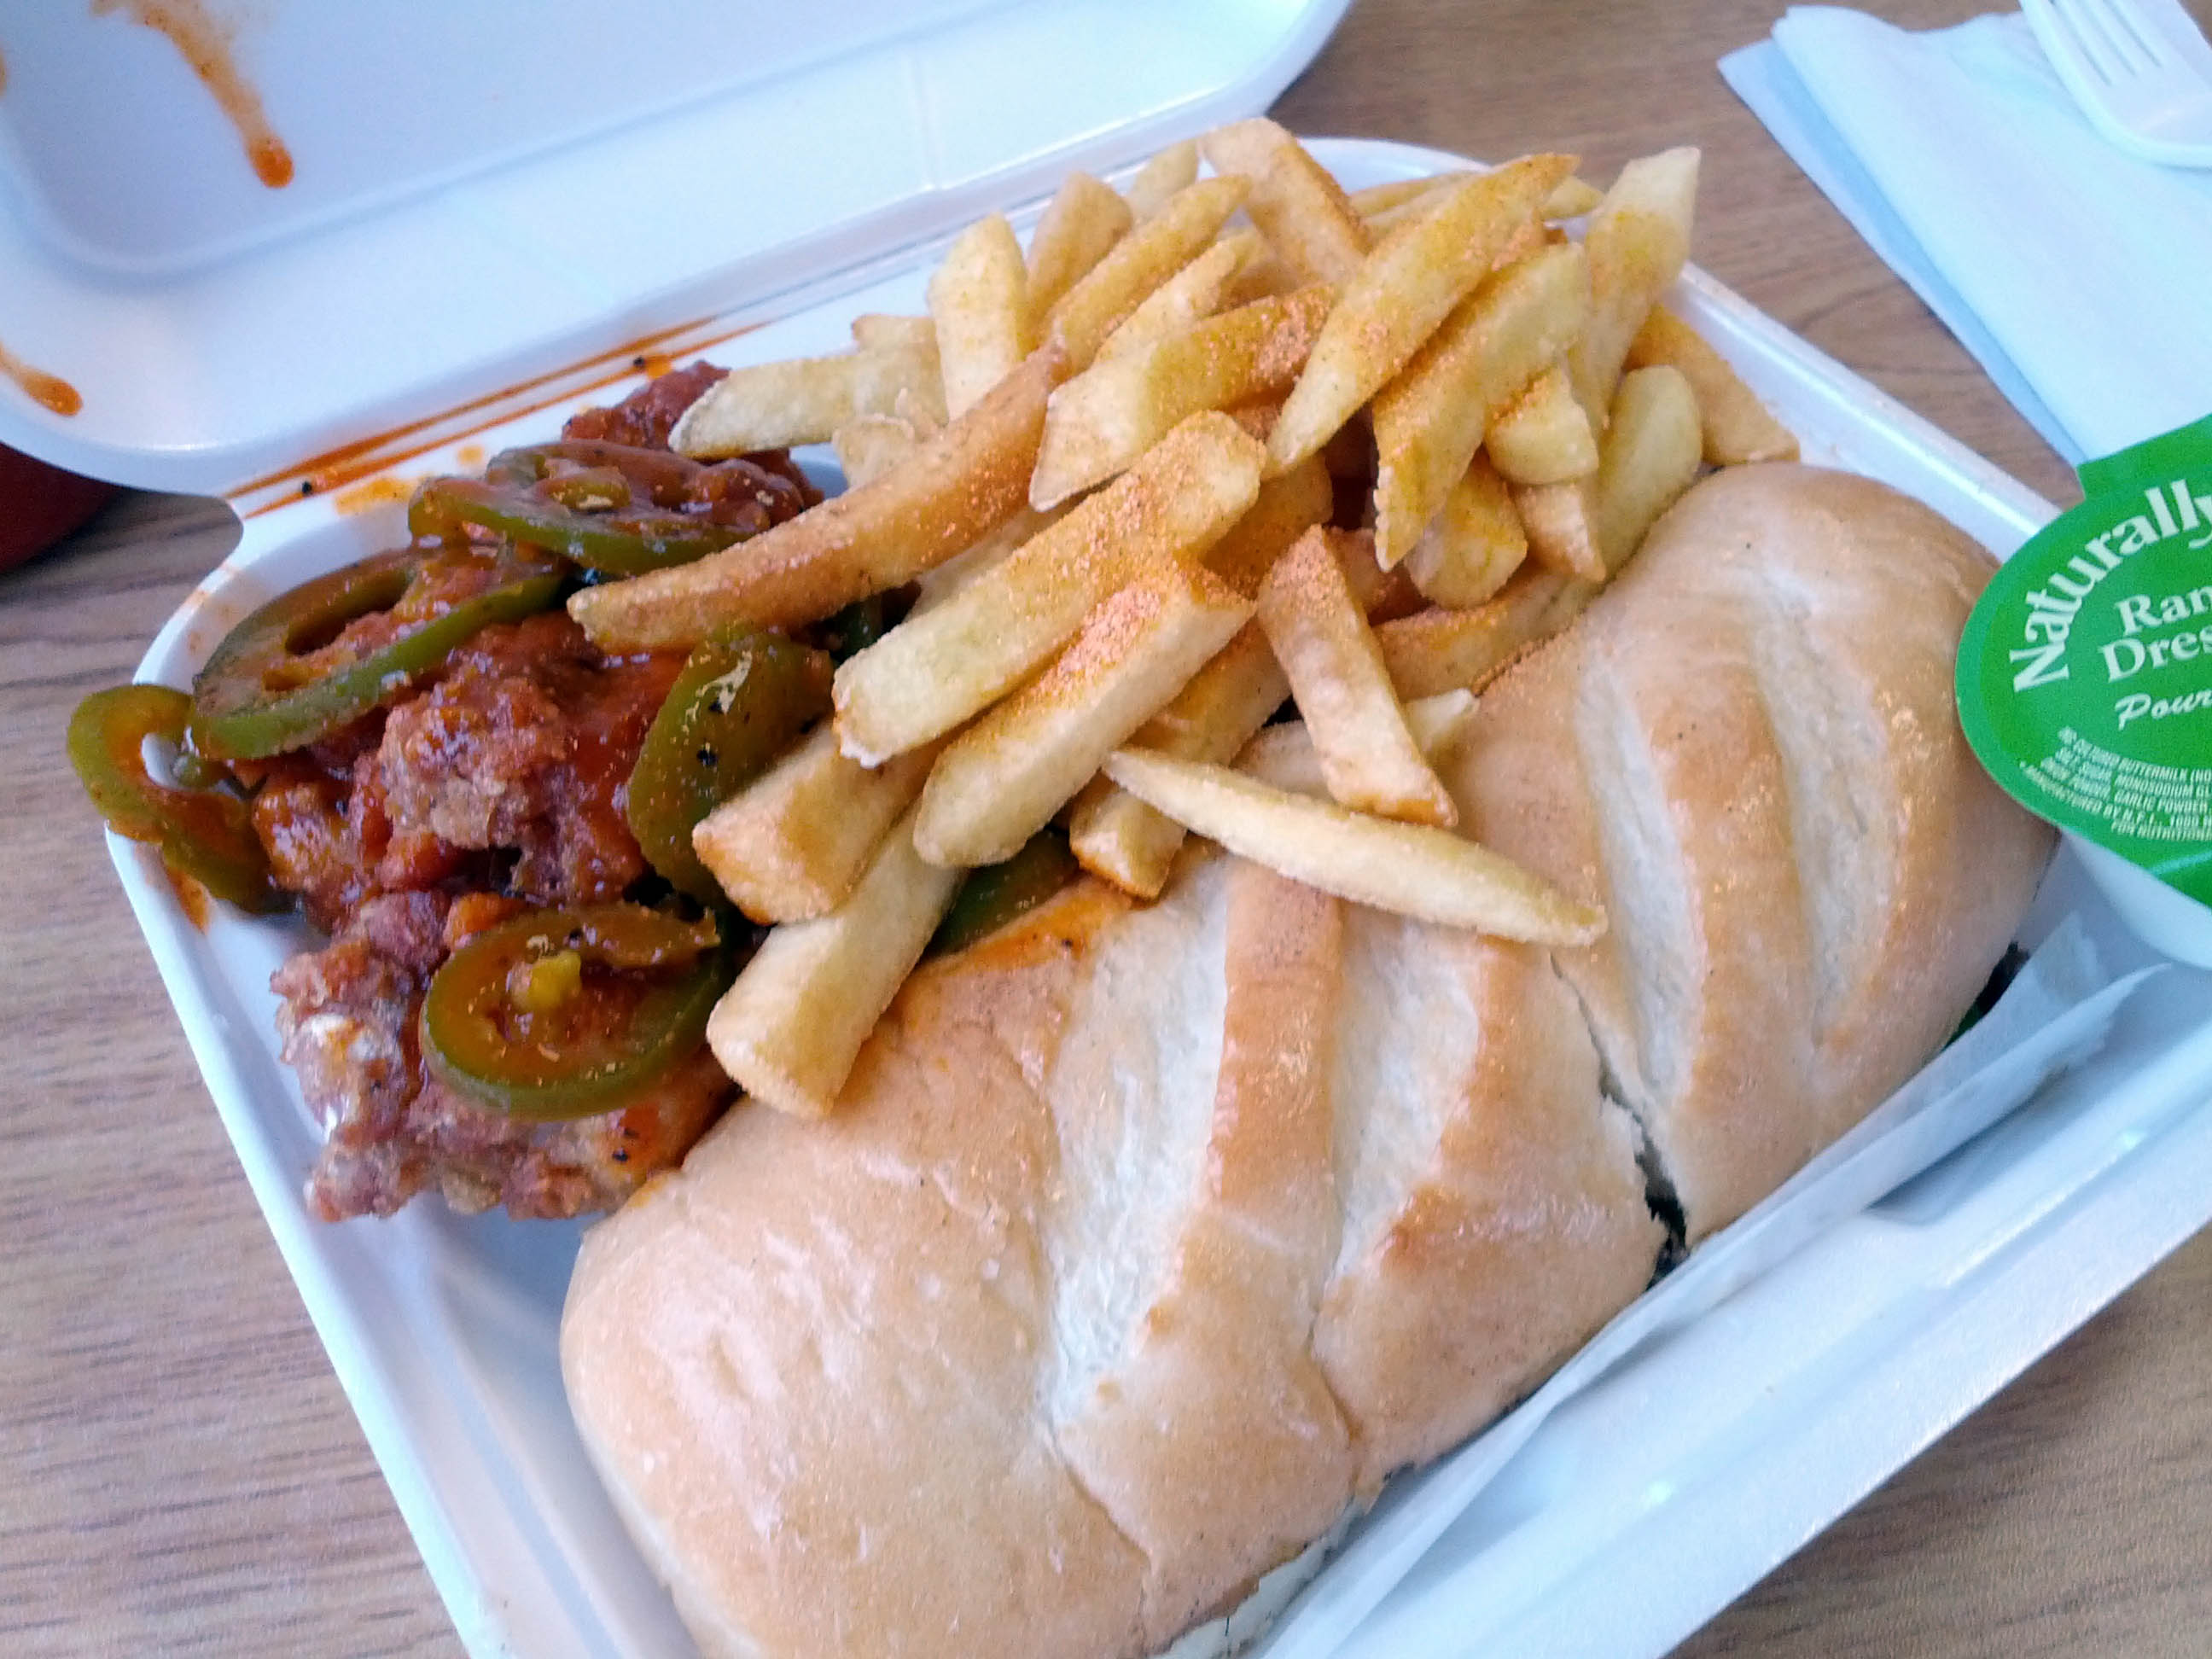 Philly cheesesteak, mexican hot wings, and fries